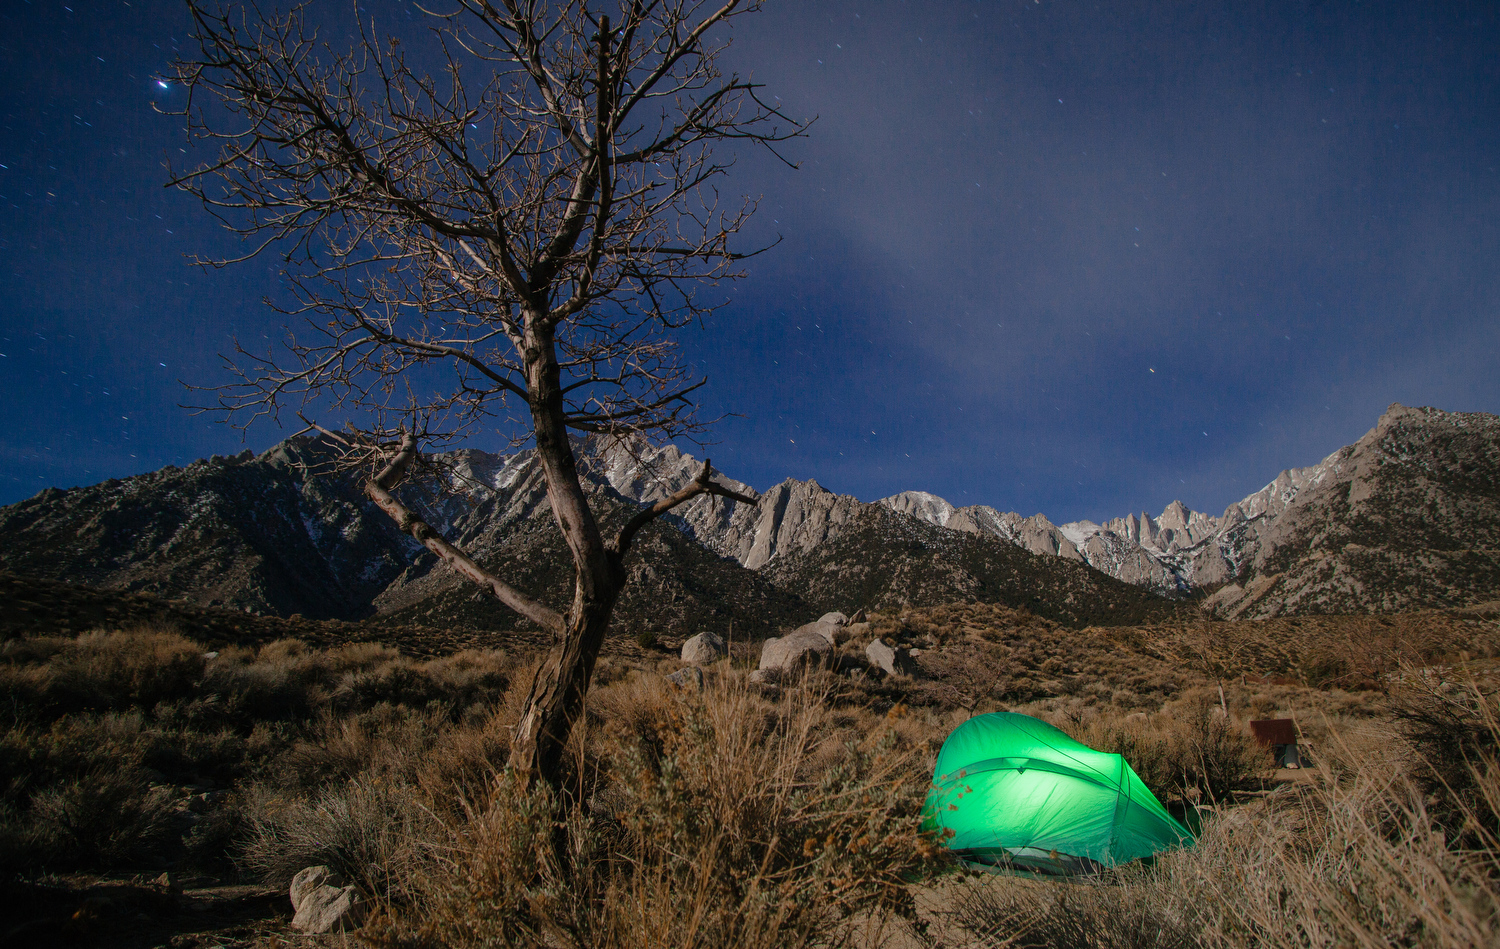 Camping near Mt. Whitney.